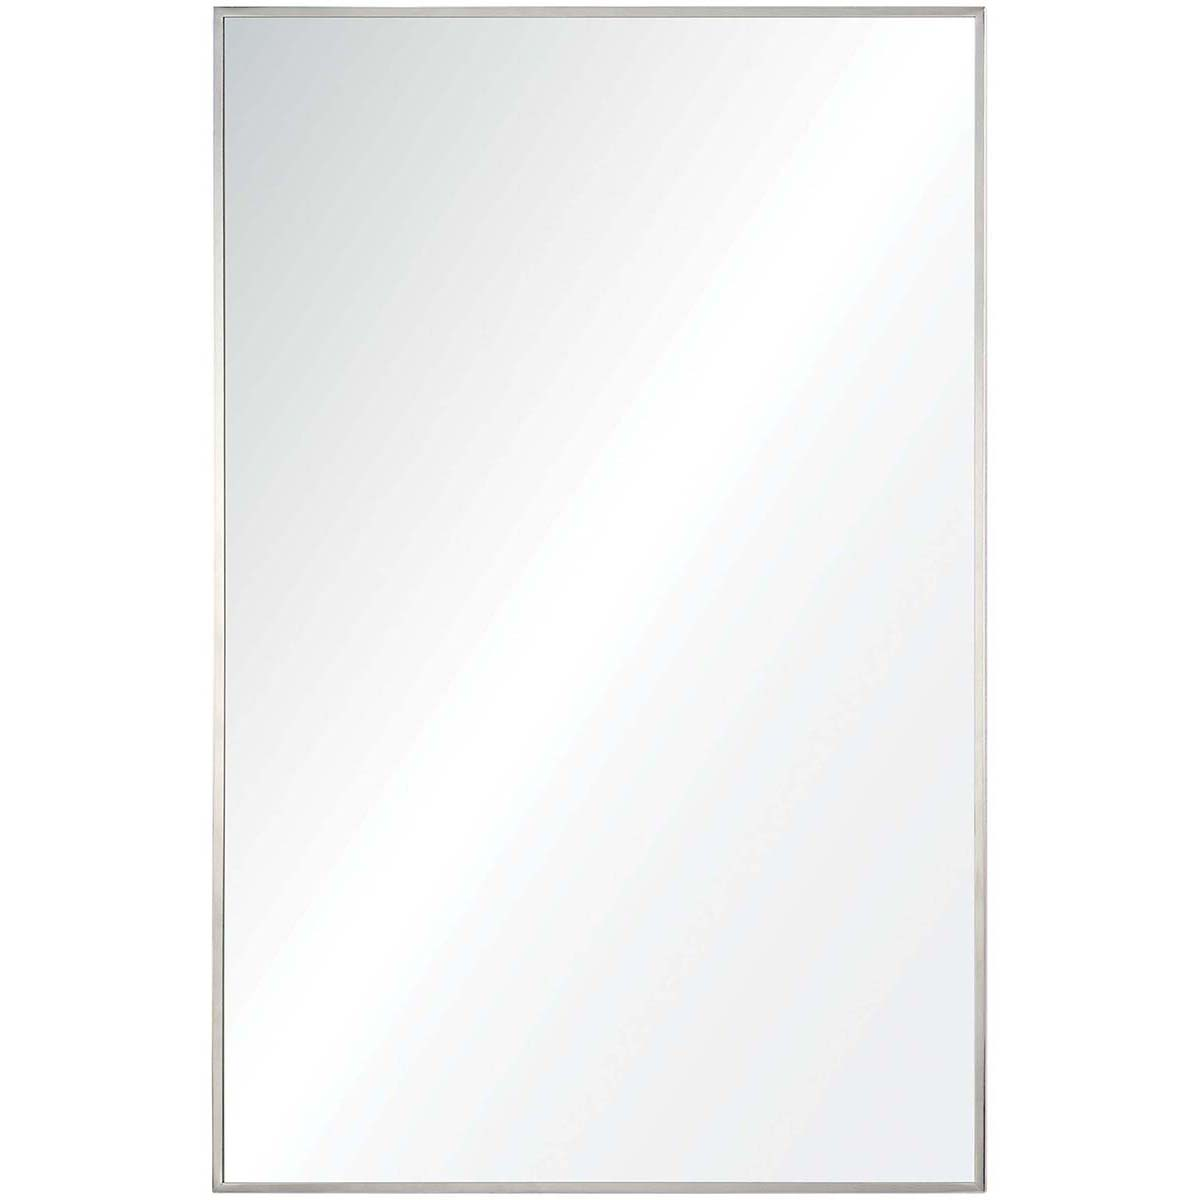 Search Crake-Mirror Product Picture 1273